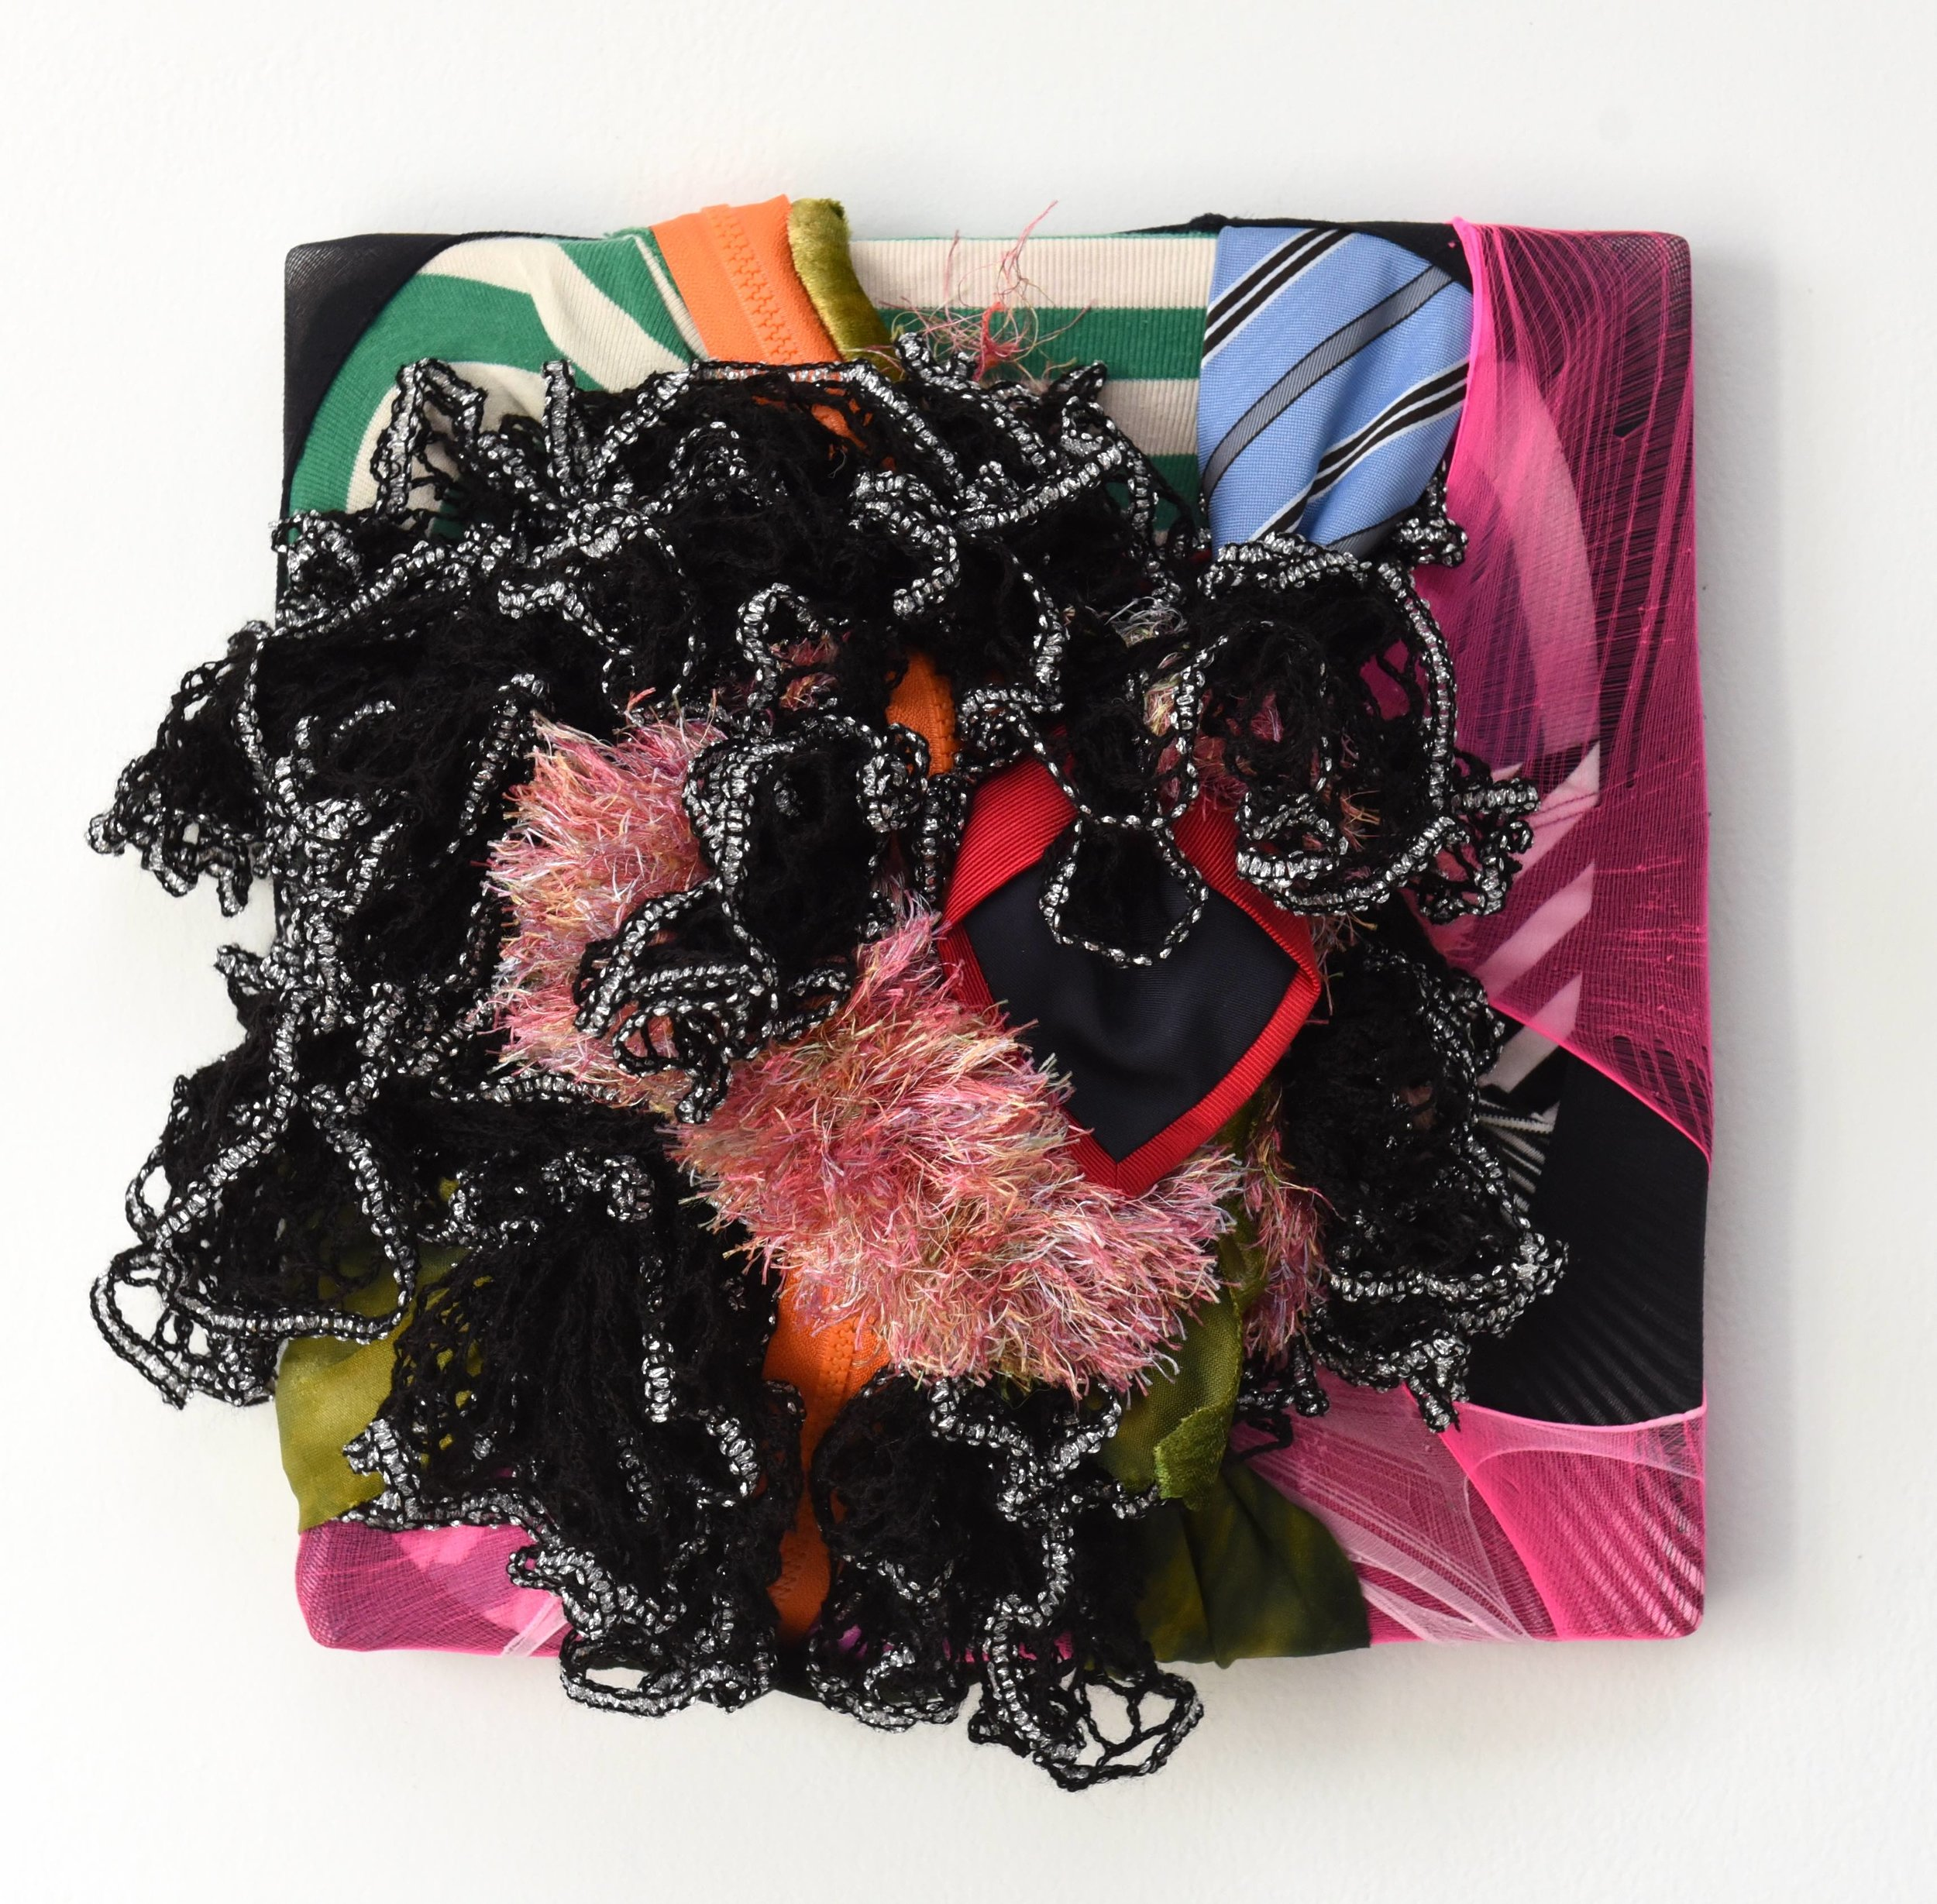 Wall Sculpture 23, 2019, fabric scraps, nylon, zipper and garments on canvas, 12 x 12 x 3.5 in, 850$